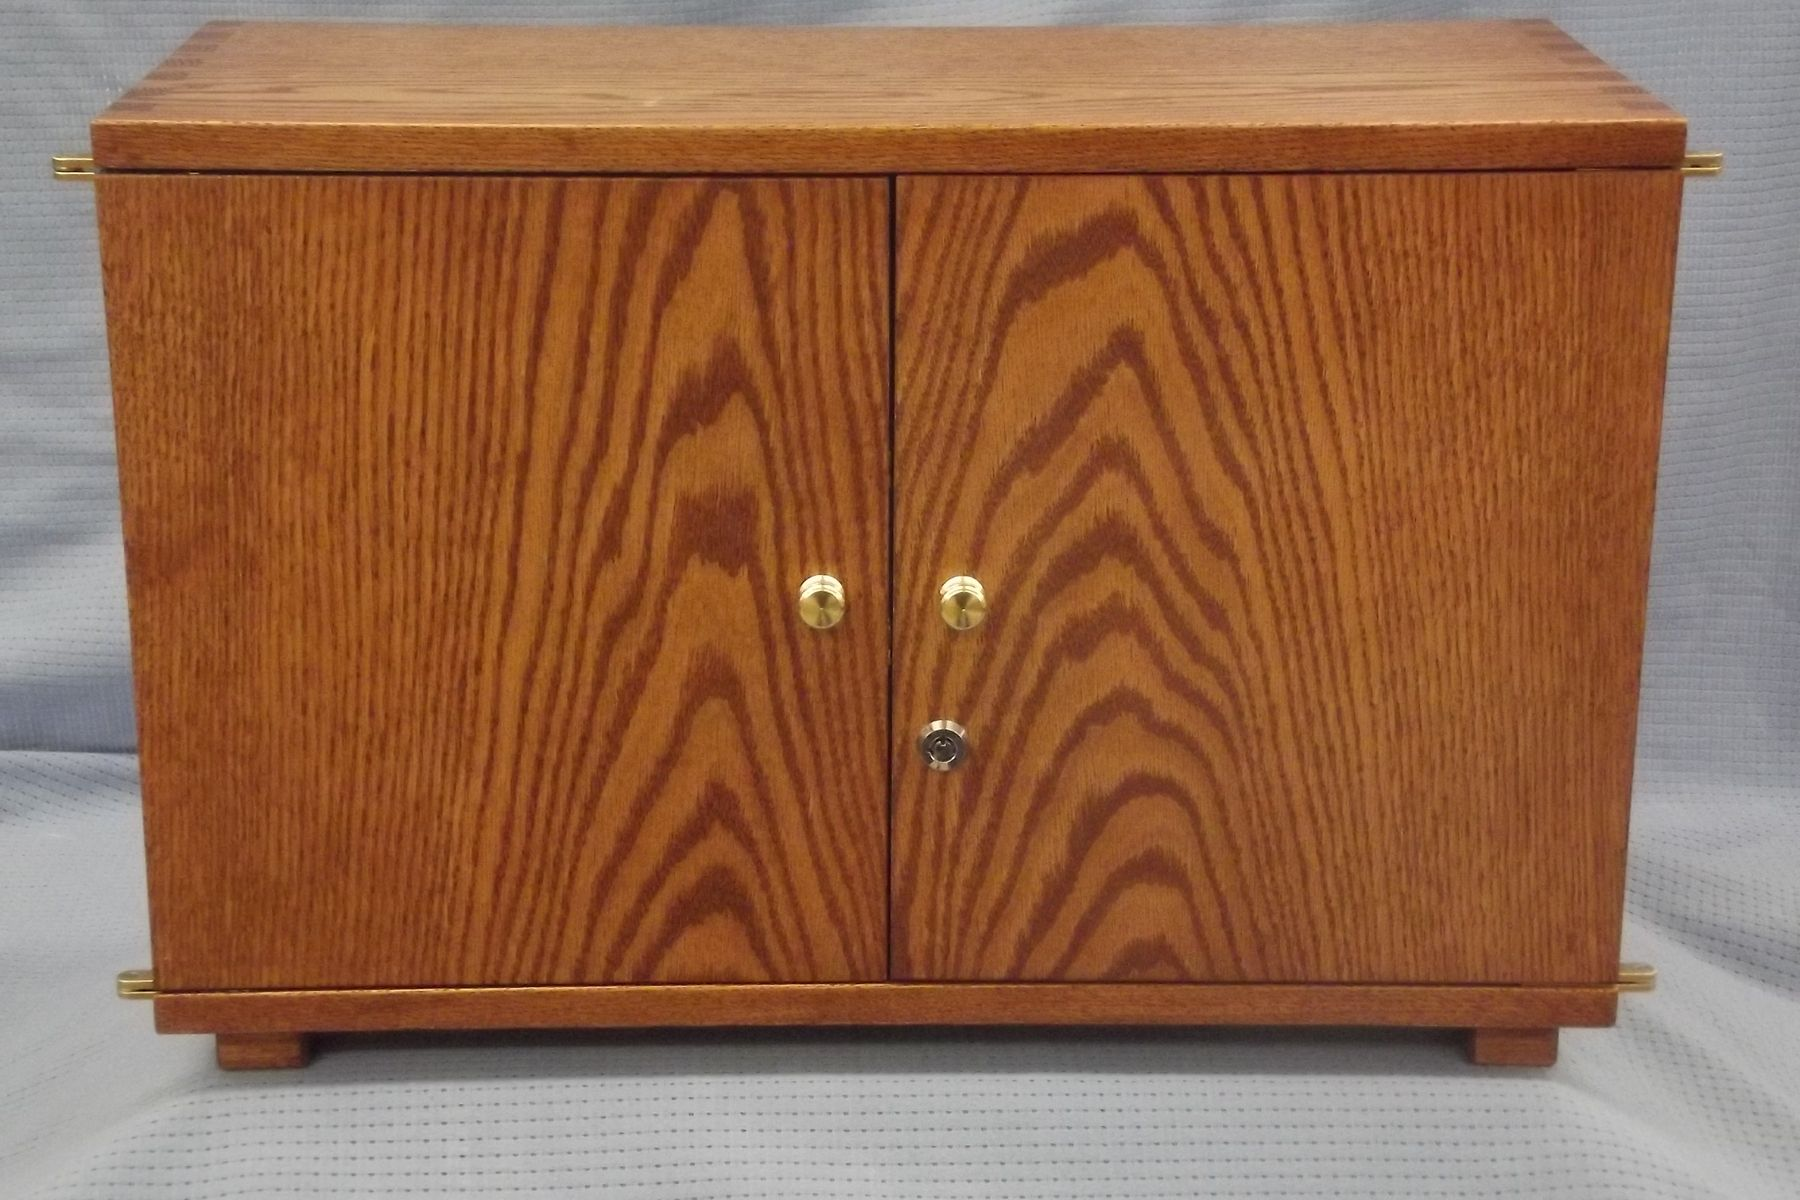 apothecary style furniture. Custom Made Locking Multi-Drawer (Or Apothecary Style) Jewelry Box Style Furniture G